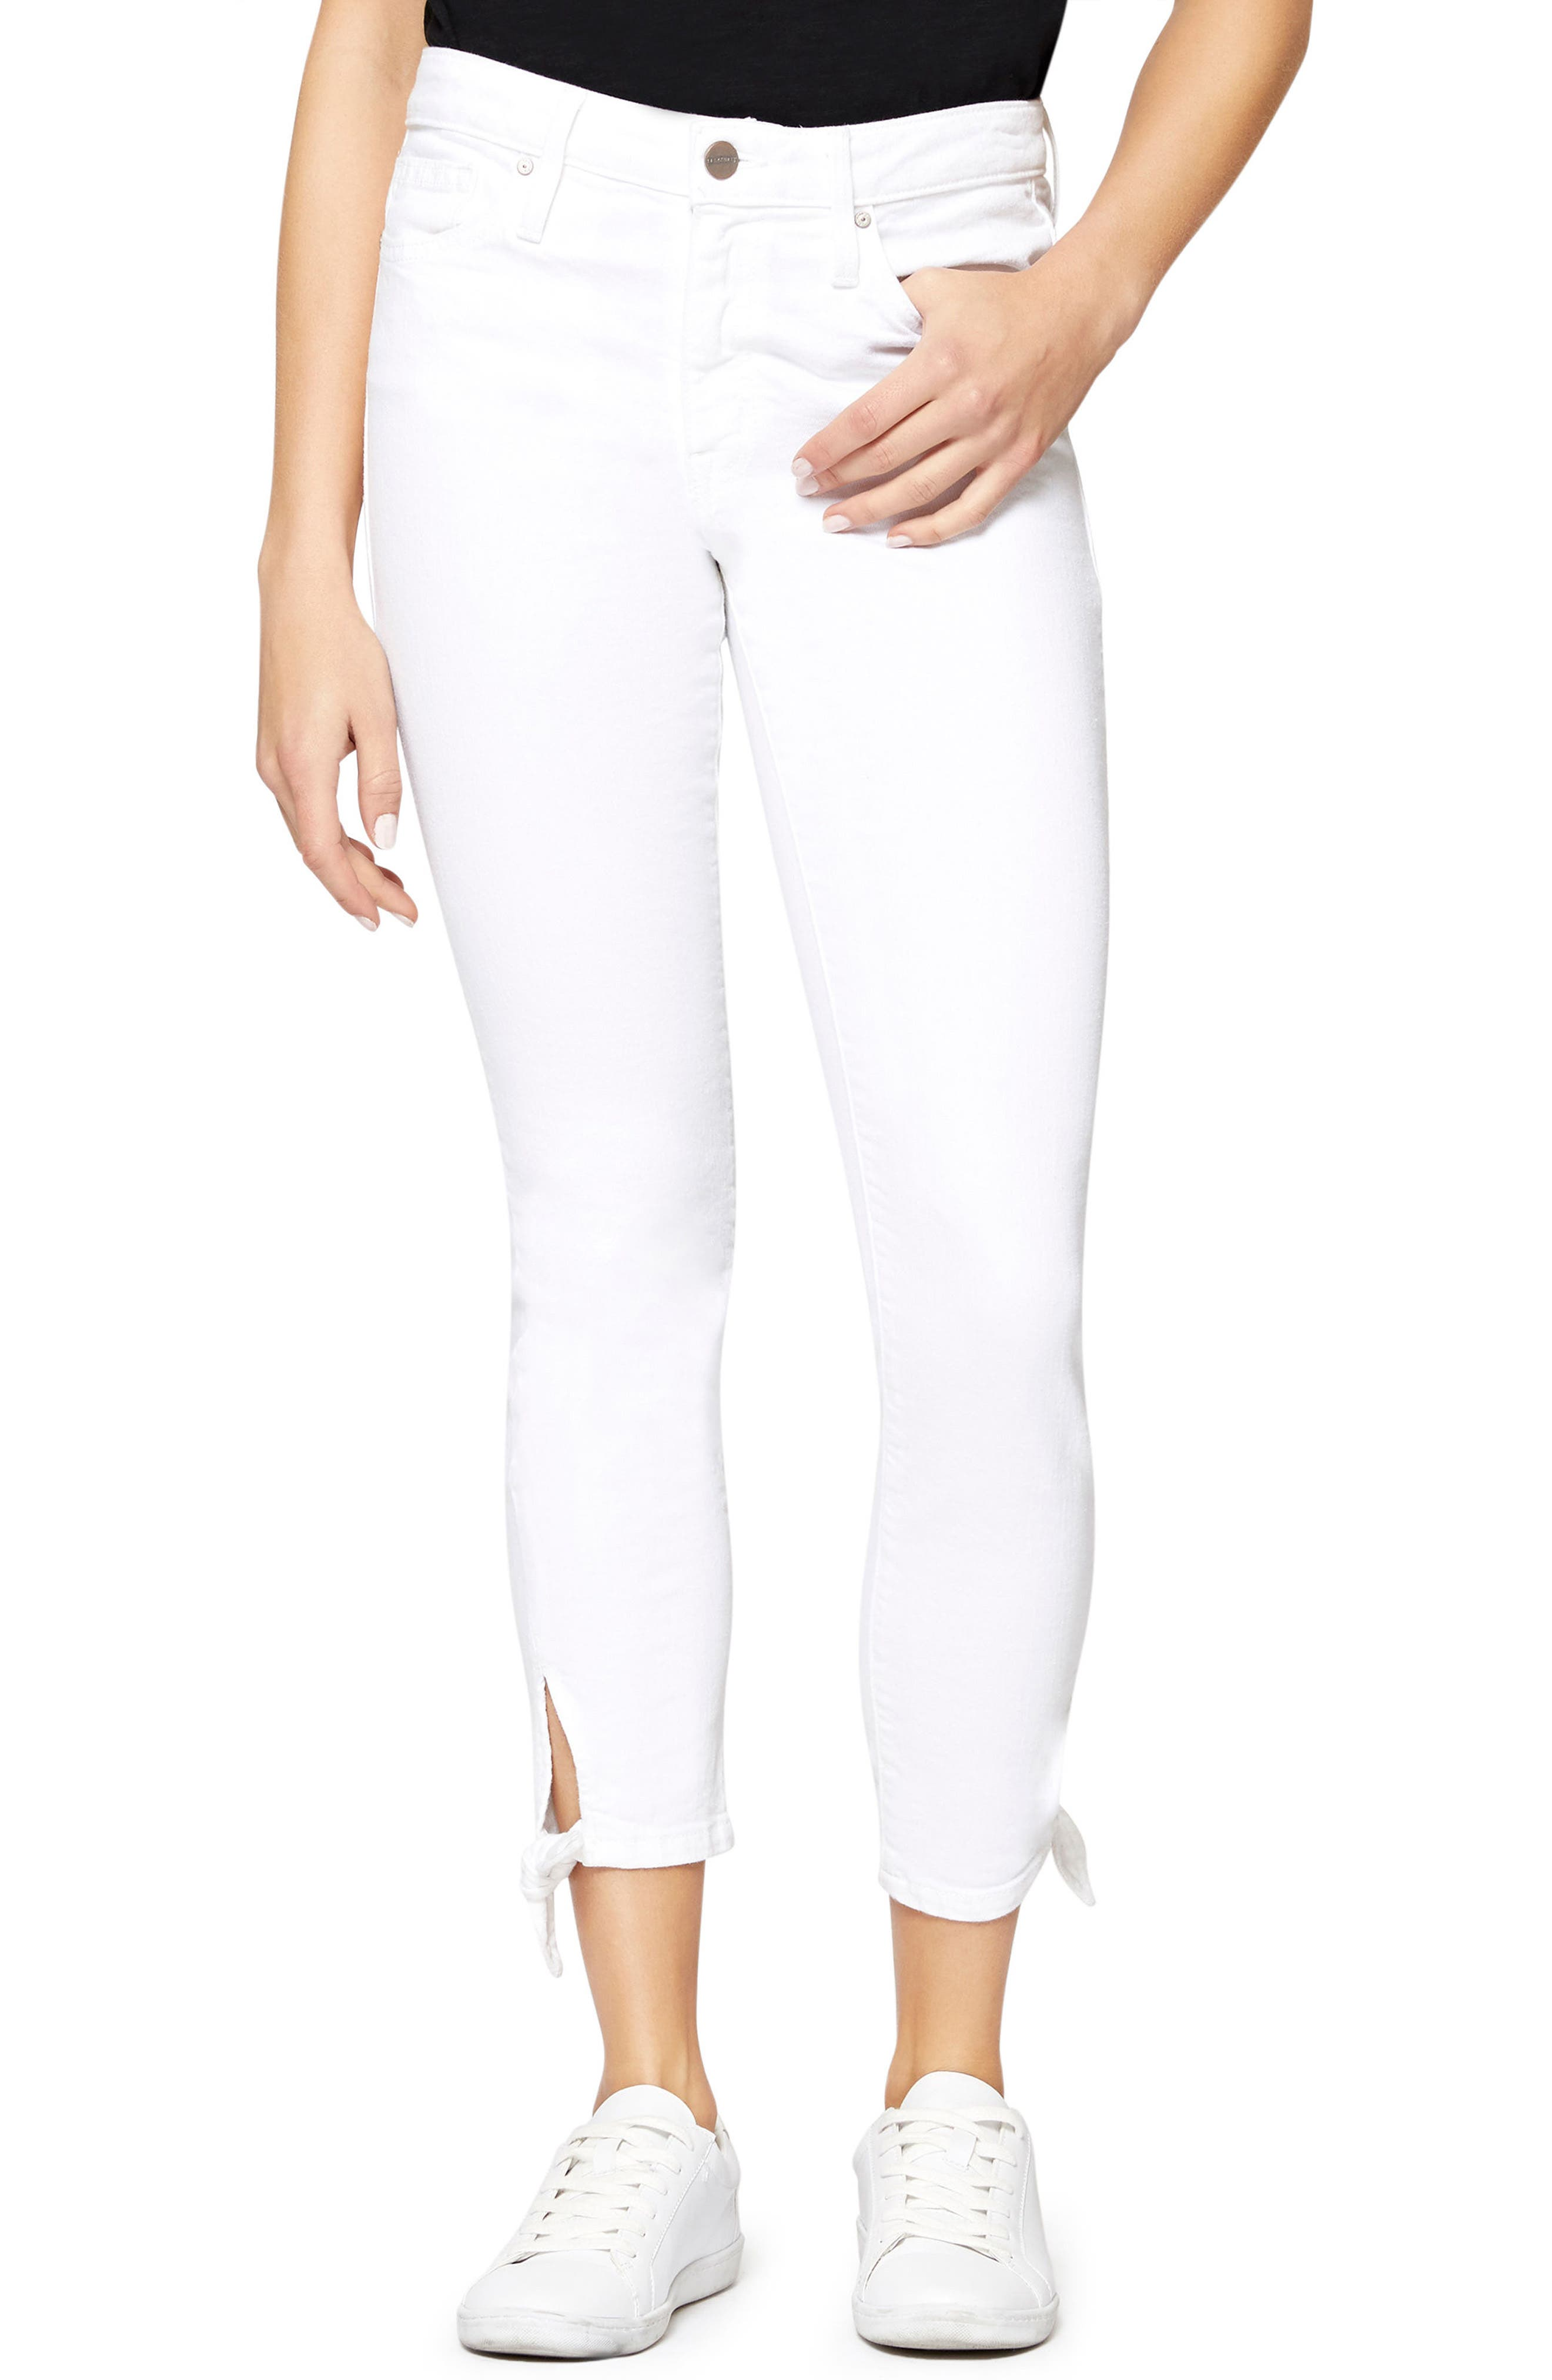 Robbie Ankle Tie Jeans,                         Main,                         color, White